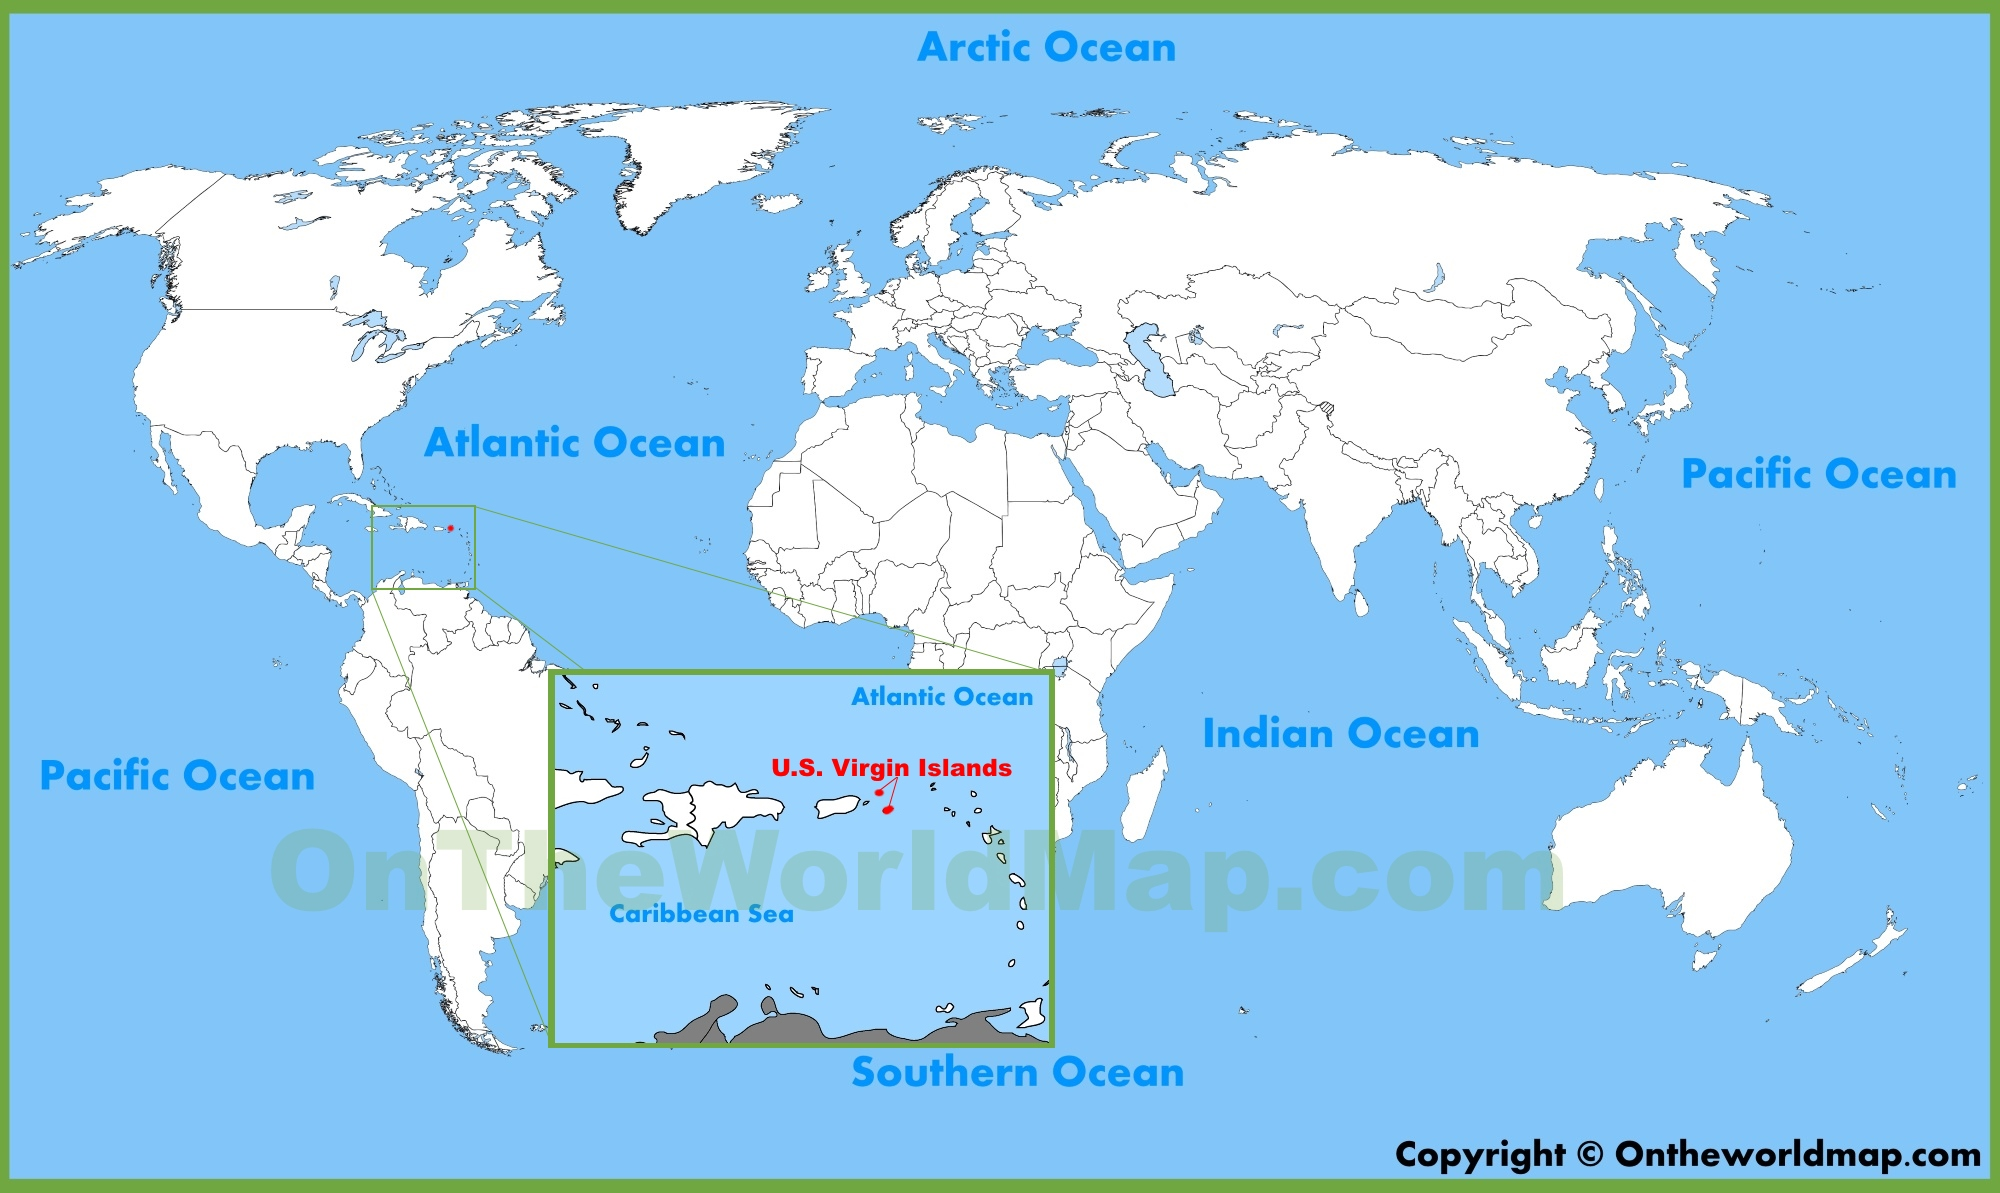 Map Of Us And Islands U.S. Virgin Islands Maps | Maps of United States Virgin Islands